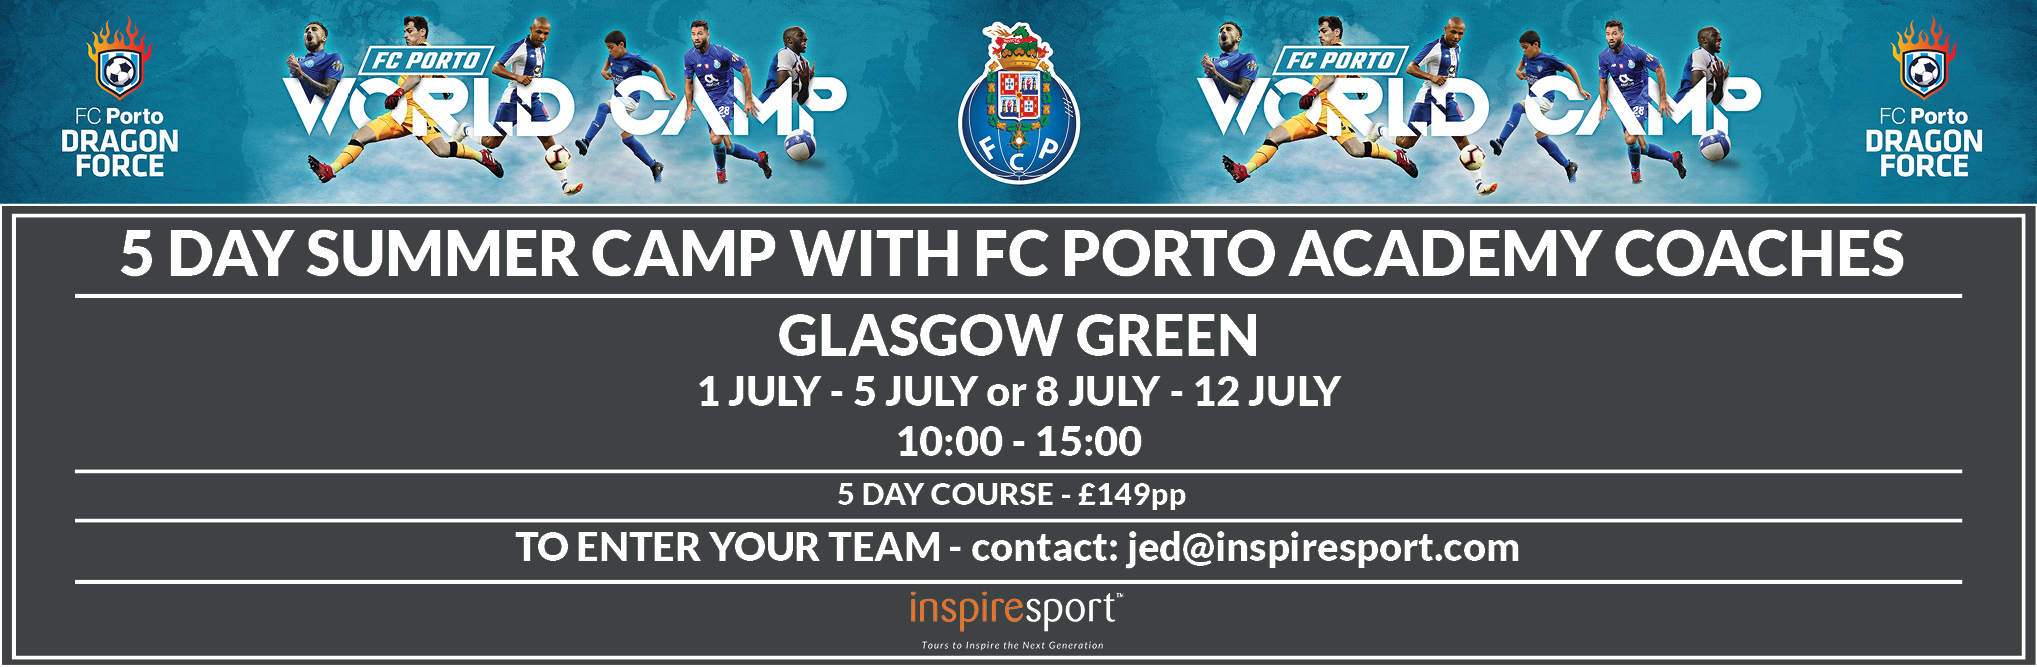 Website top banner FC Porto summer camp